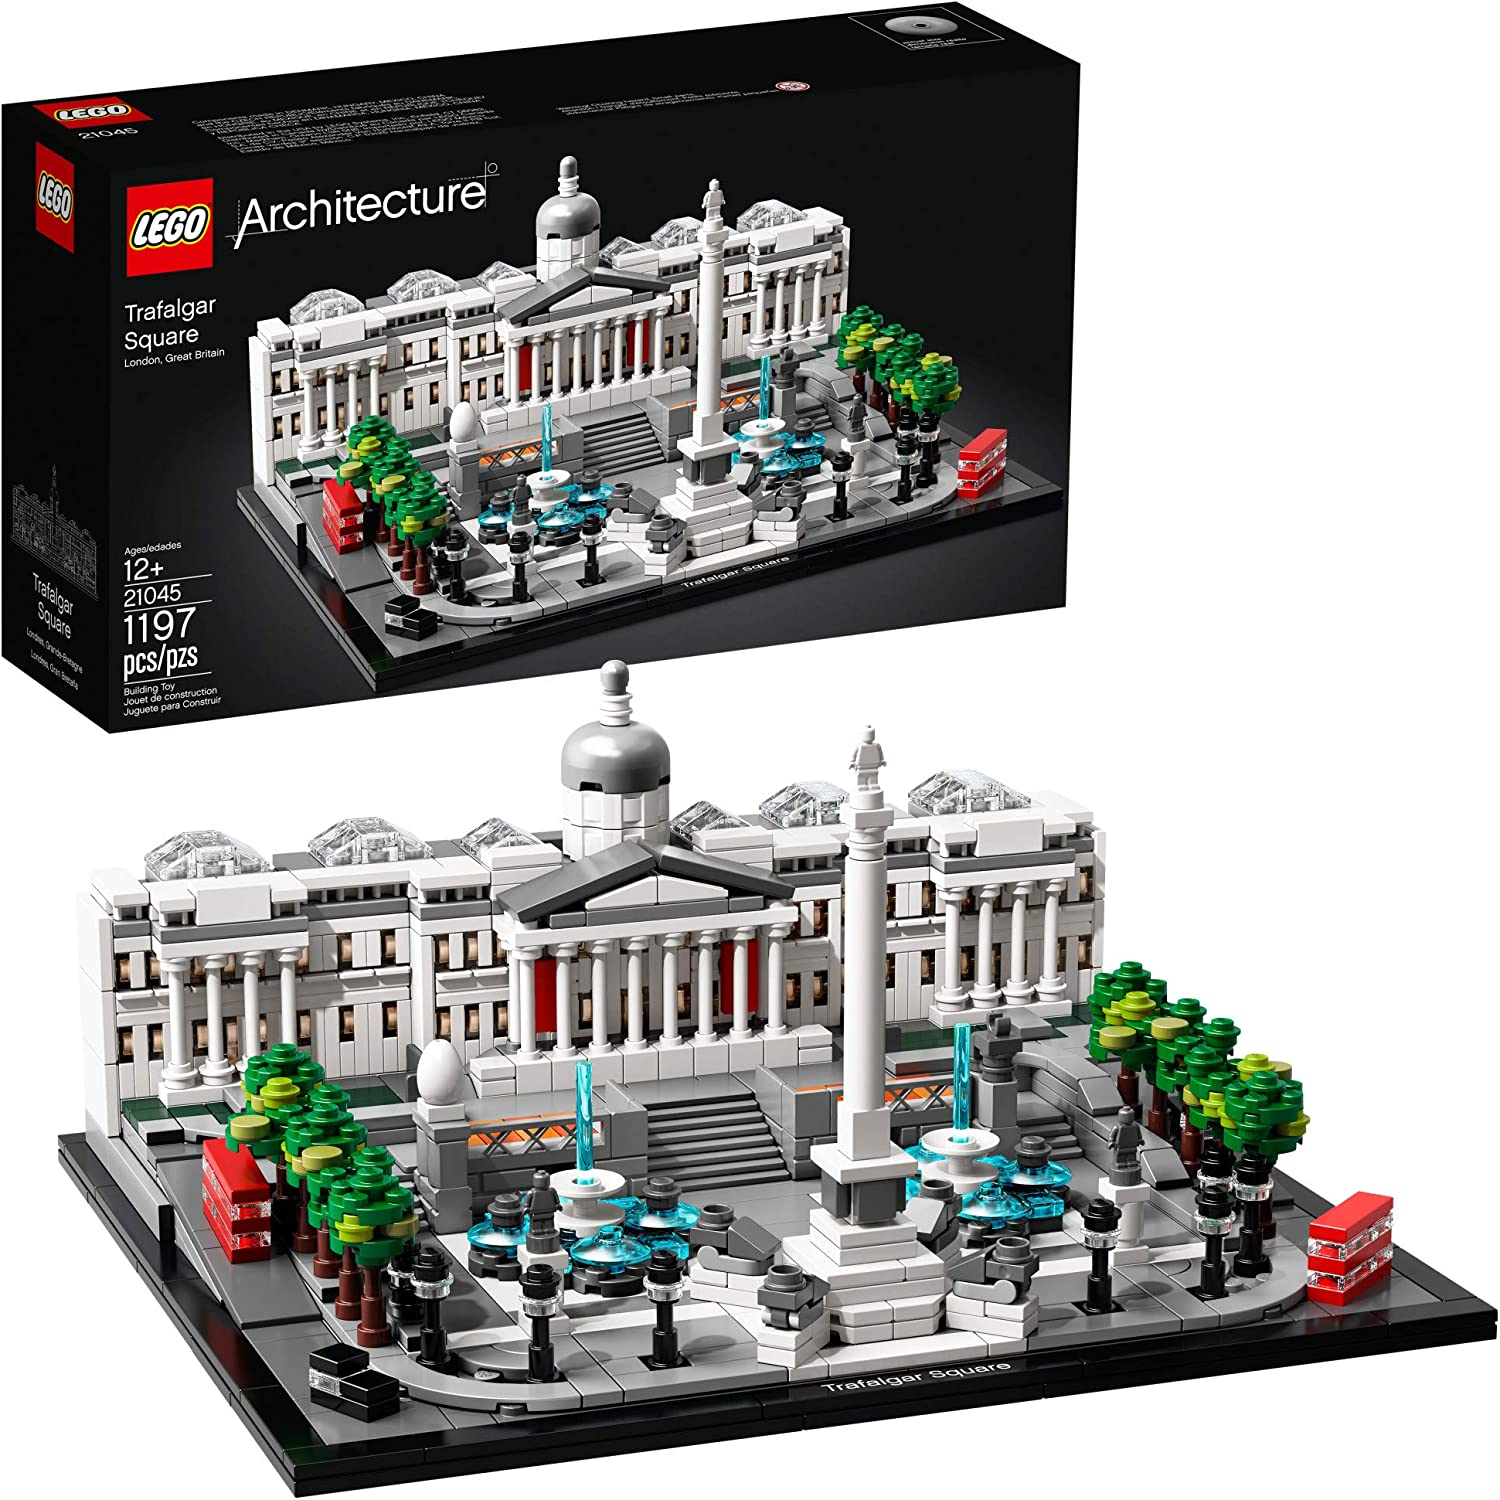 LEGO Architecture 21045 Trafalgar Square Building Kit (1197 Pieces)